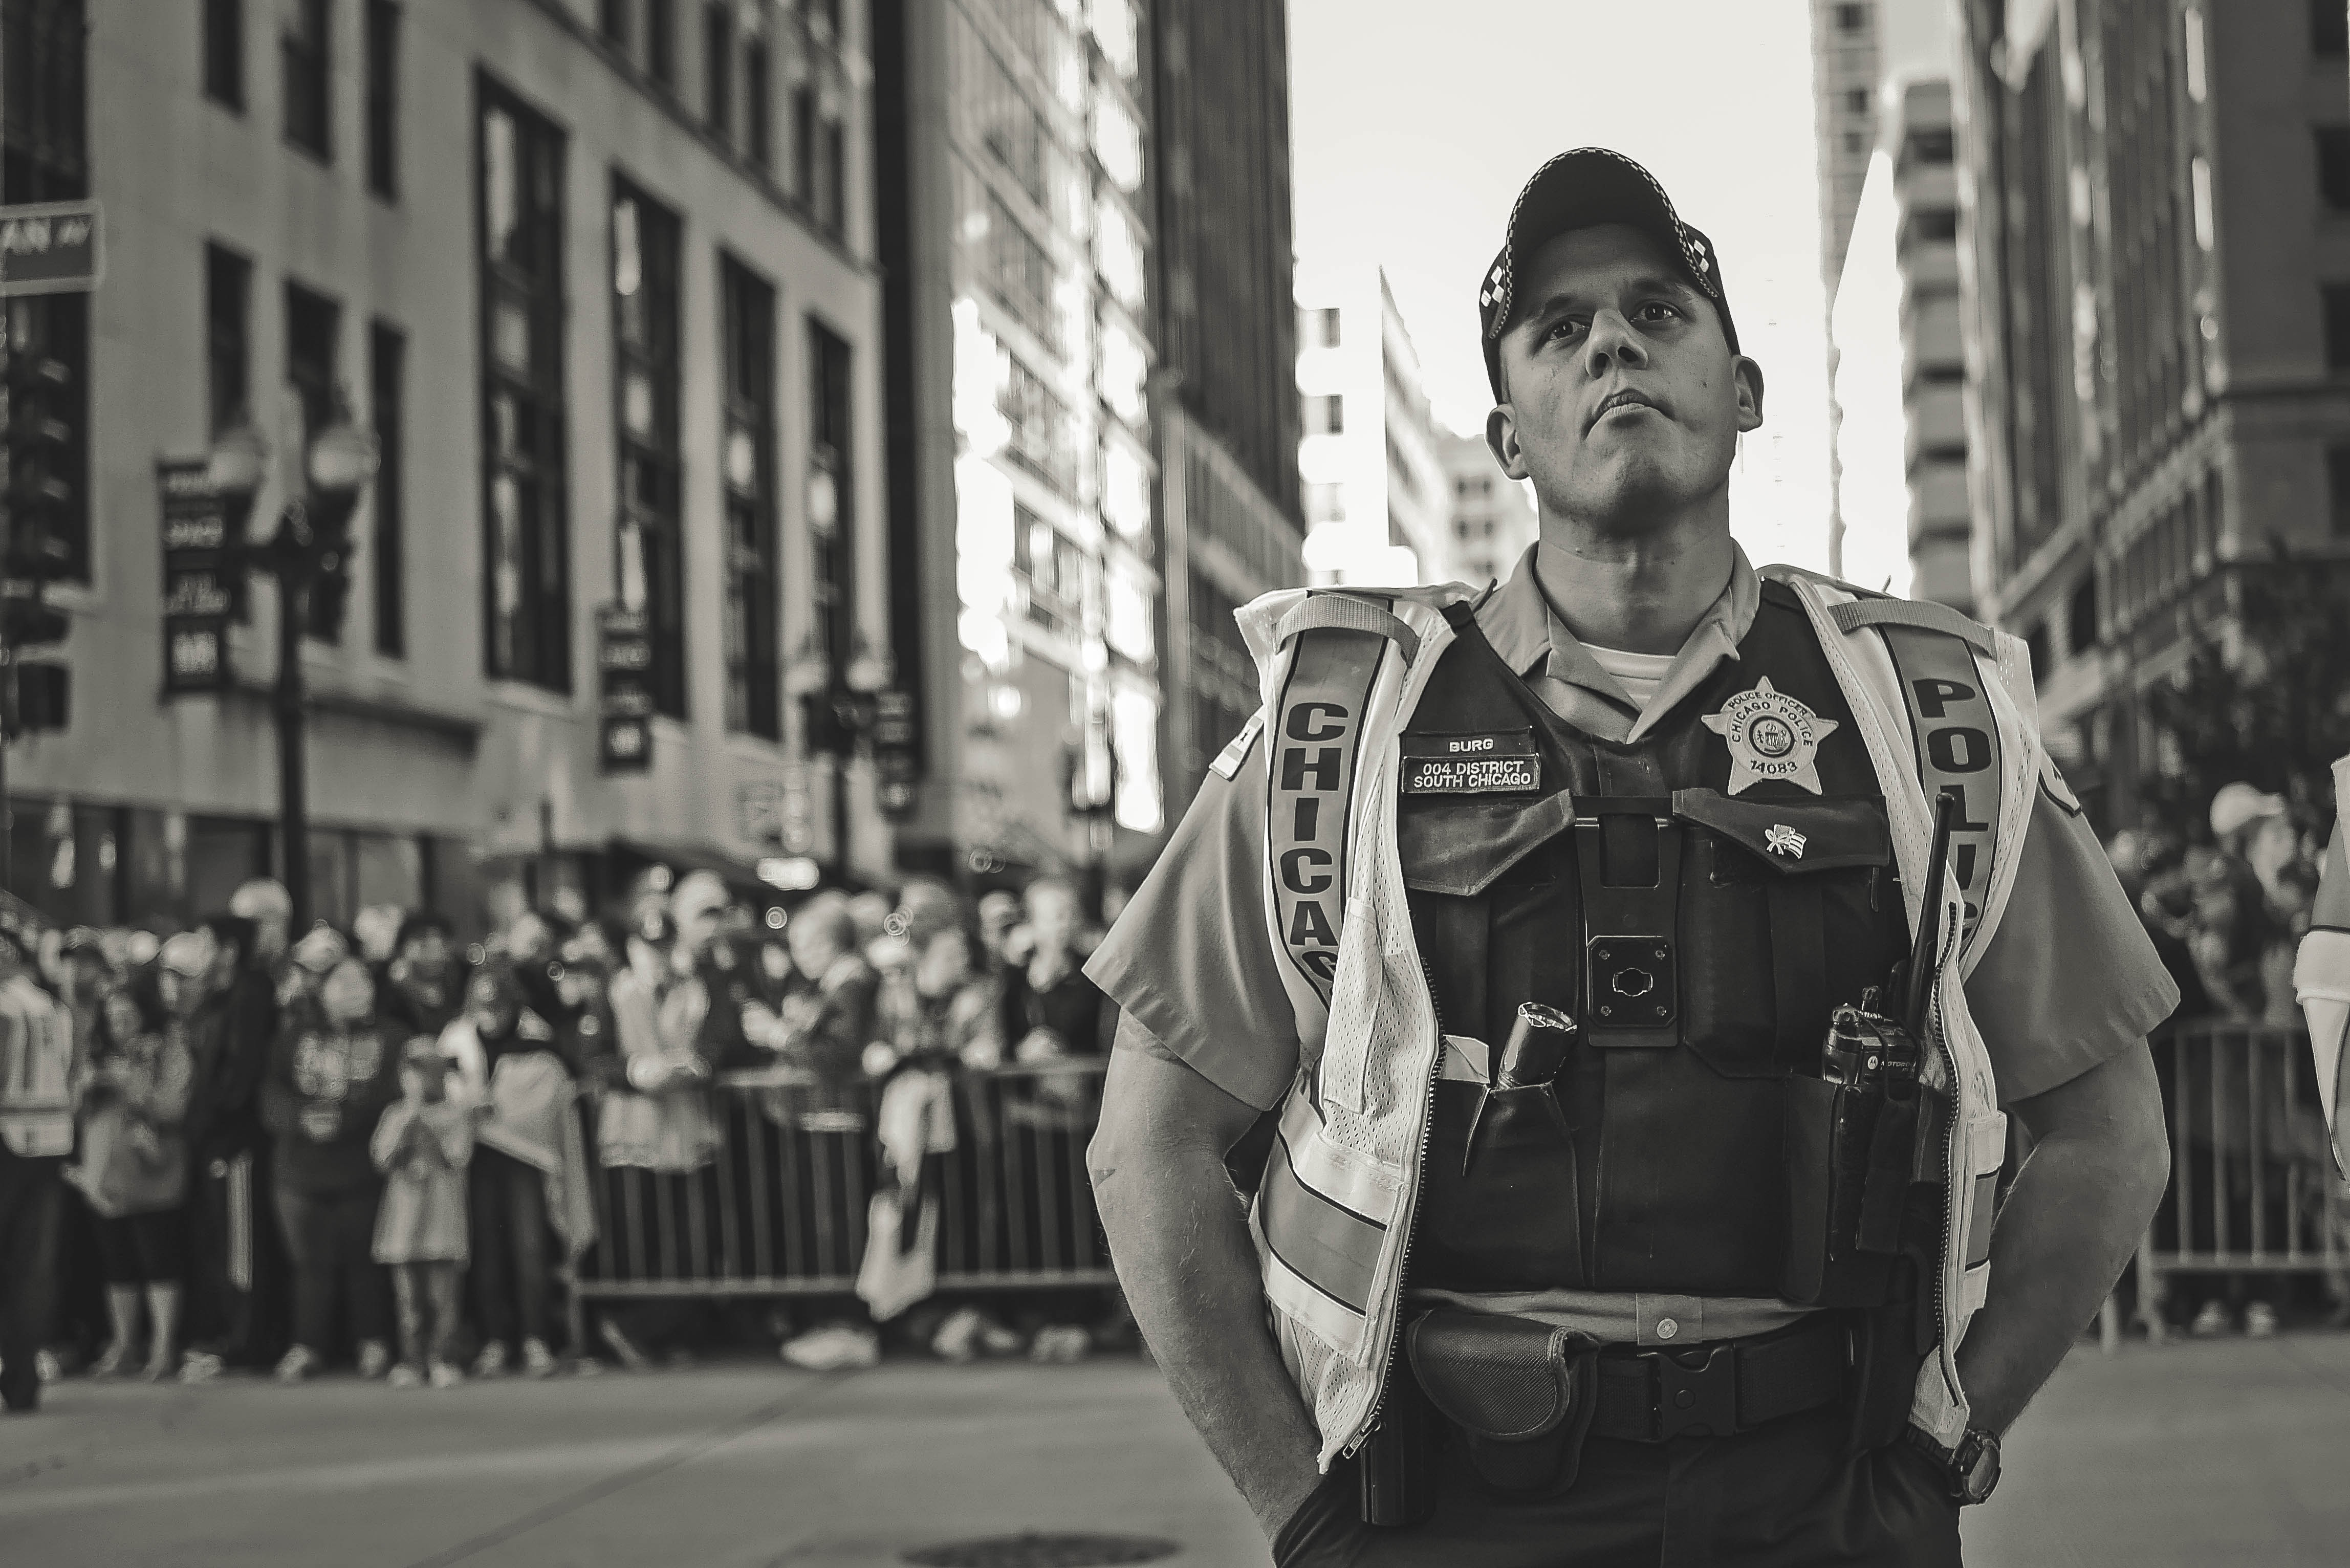 Grayscale Photo of a Police